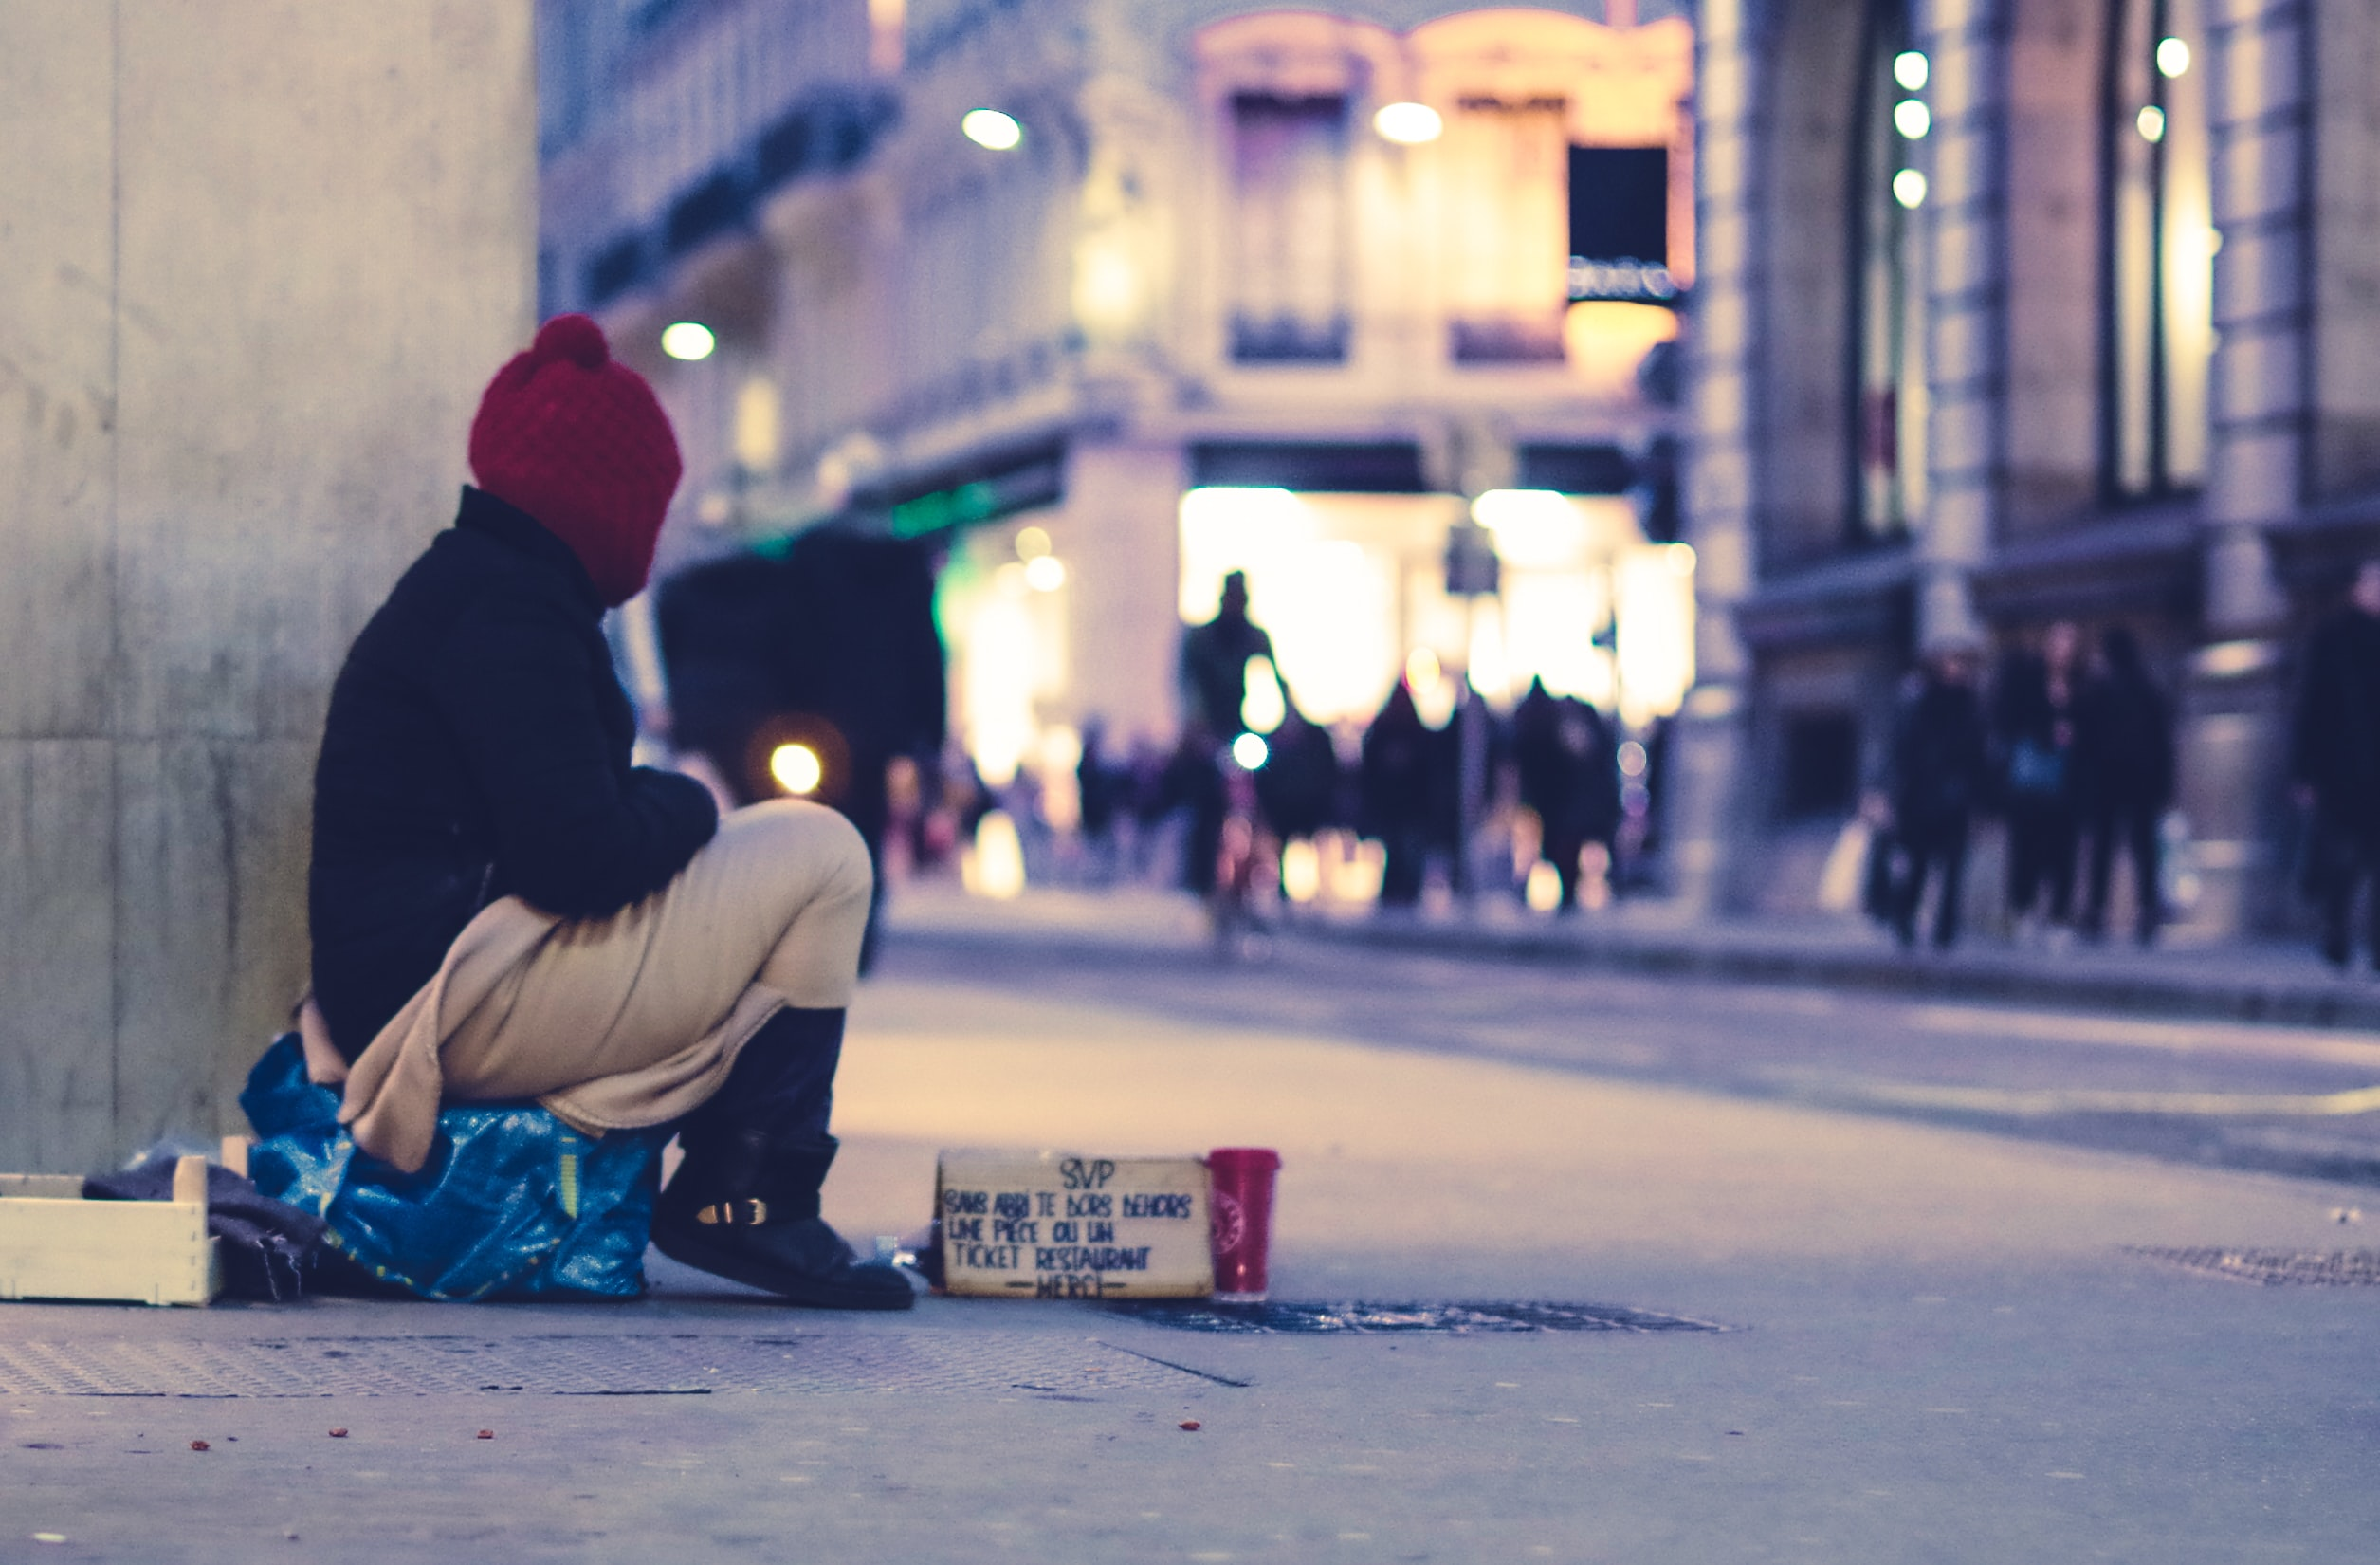 A homeless person sits on their belongings. They are wrapped up in a hoodie and are looking at into the street.